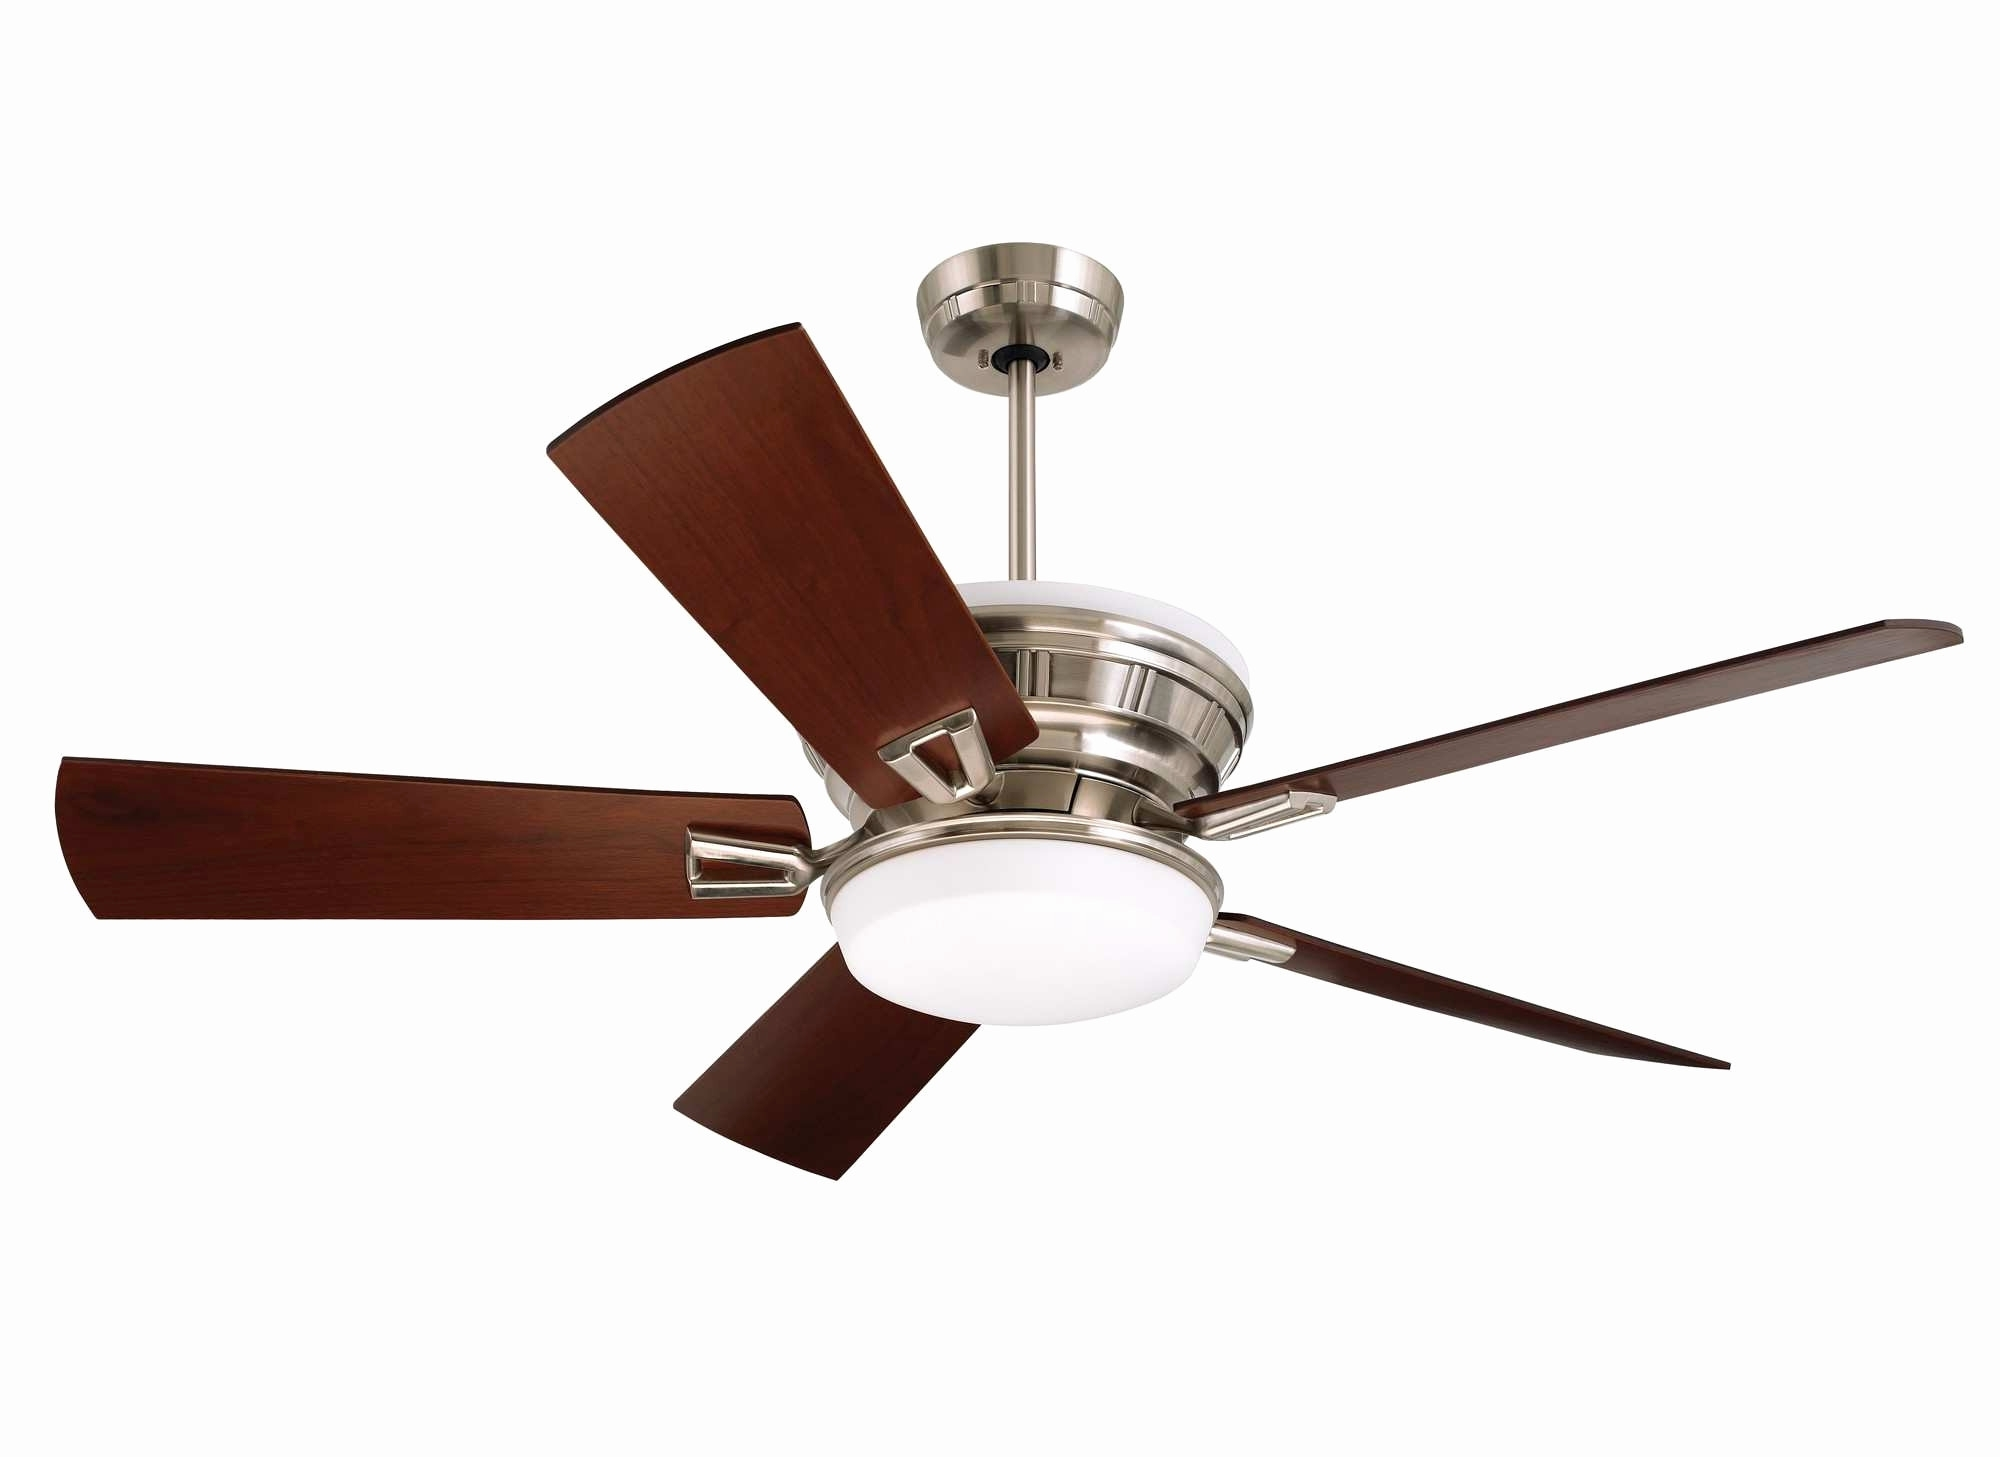 Famous Best Energy Star Ceiling Fans Luxury Home Depot Outdoor Ceiling Fans Inside Energy Star Outdoor Ceiling Fans With Light (Gallery 19 of 20)